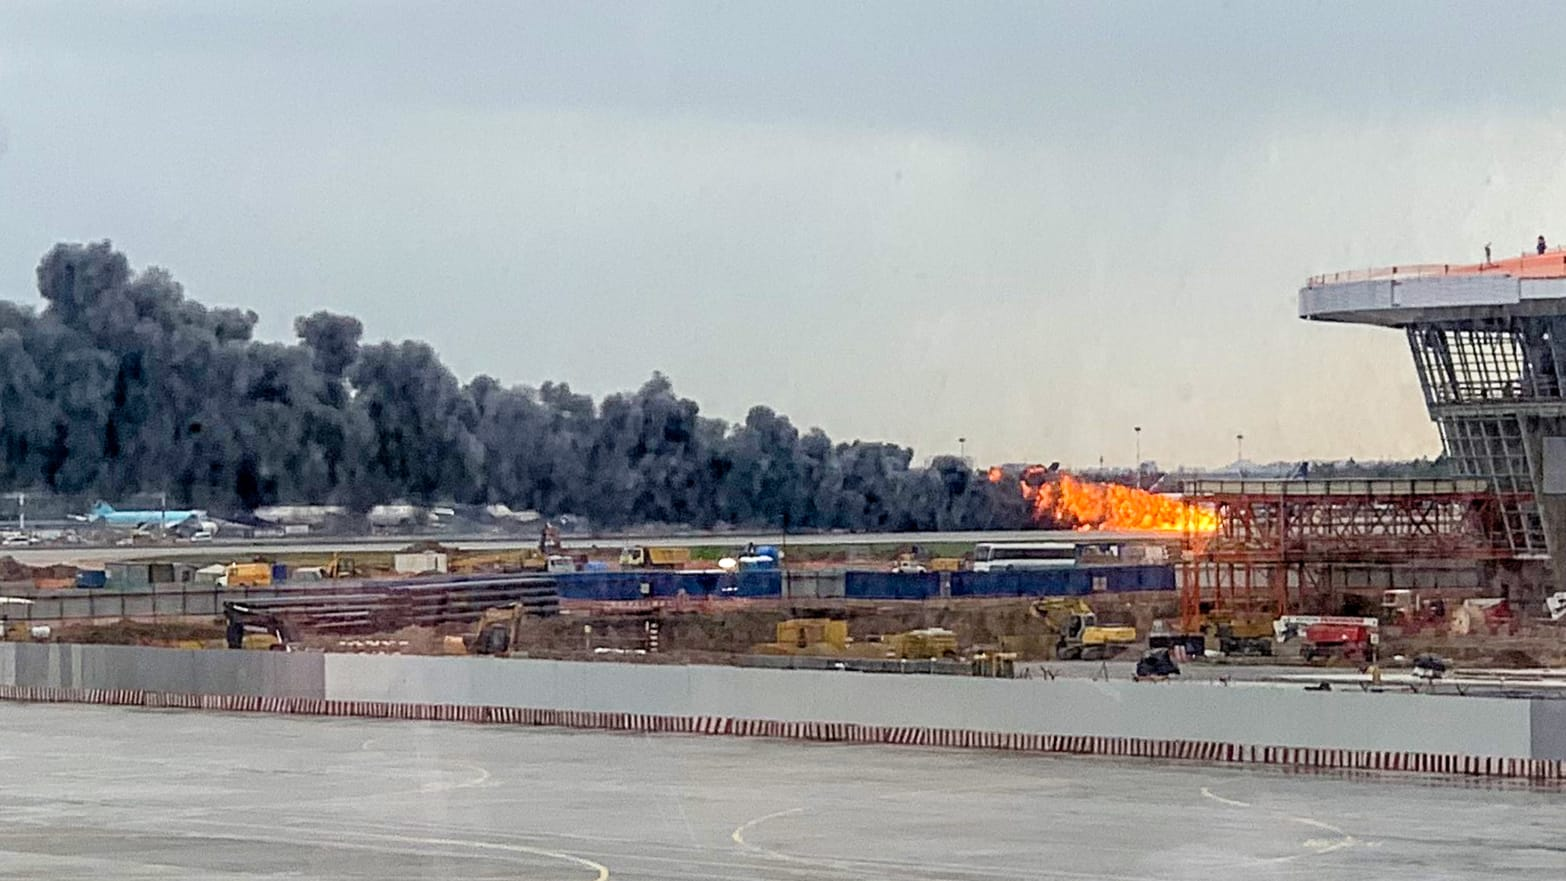 Plane Crash in Moscow: Russian Aeroflot Jet Bursts Into Flames Mid-Flight, At Least One Dead